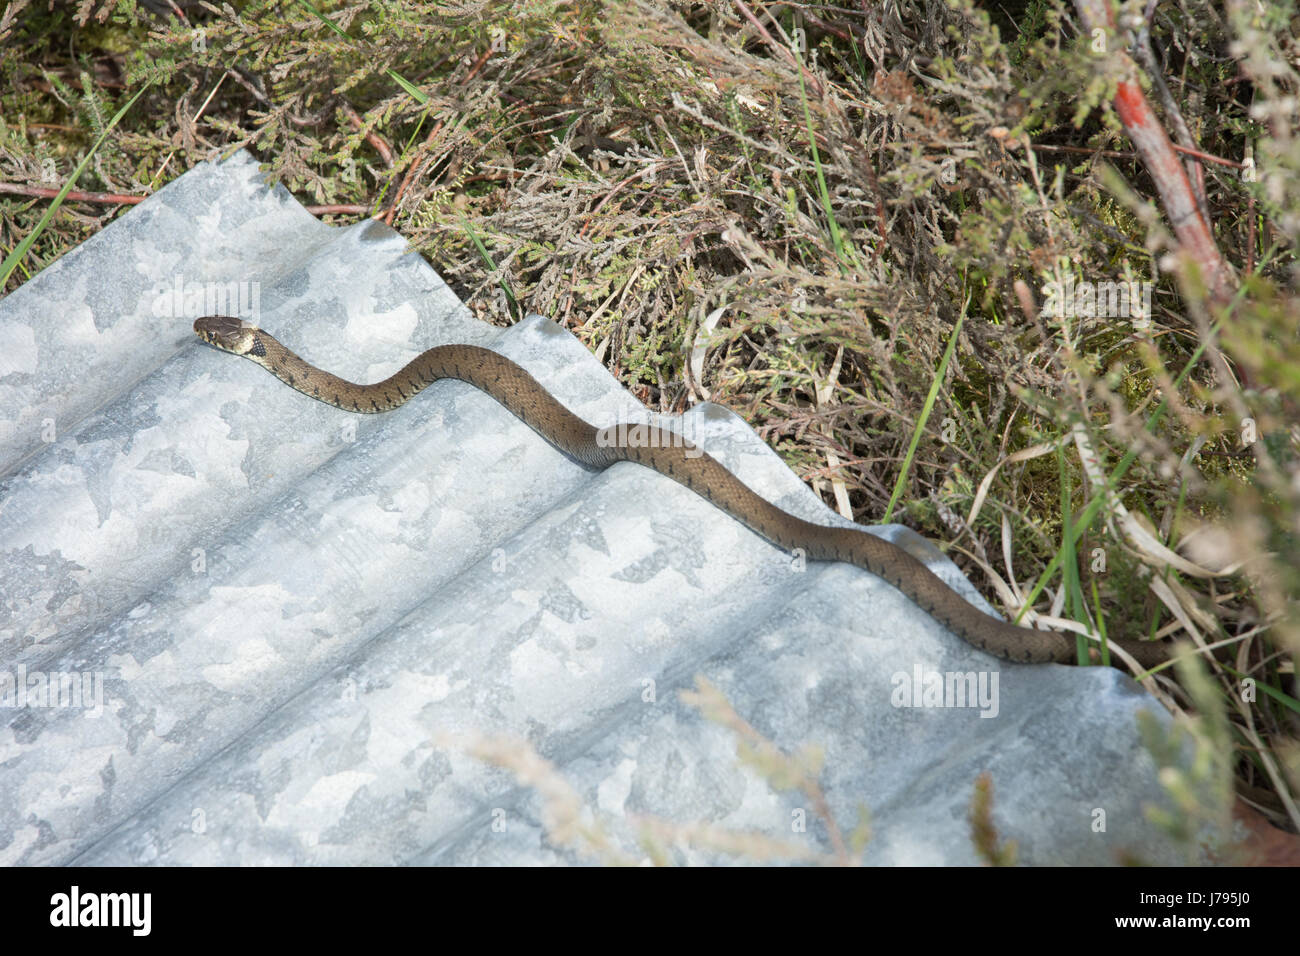 grass-snake-natrix-natrix-basking-in-sun-on-top-of-corrugated-iron-J795J0.jpg